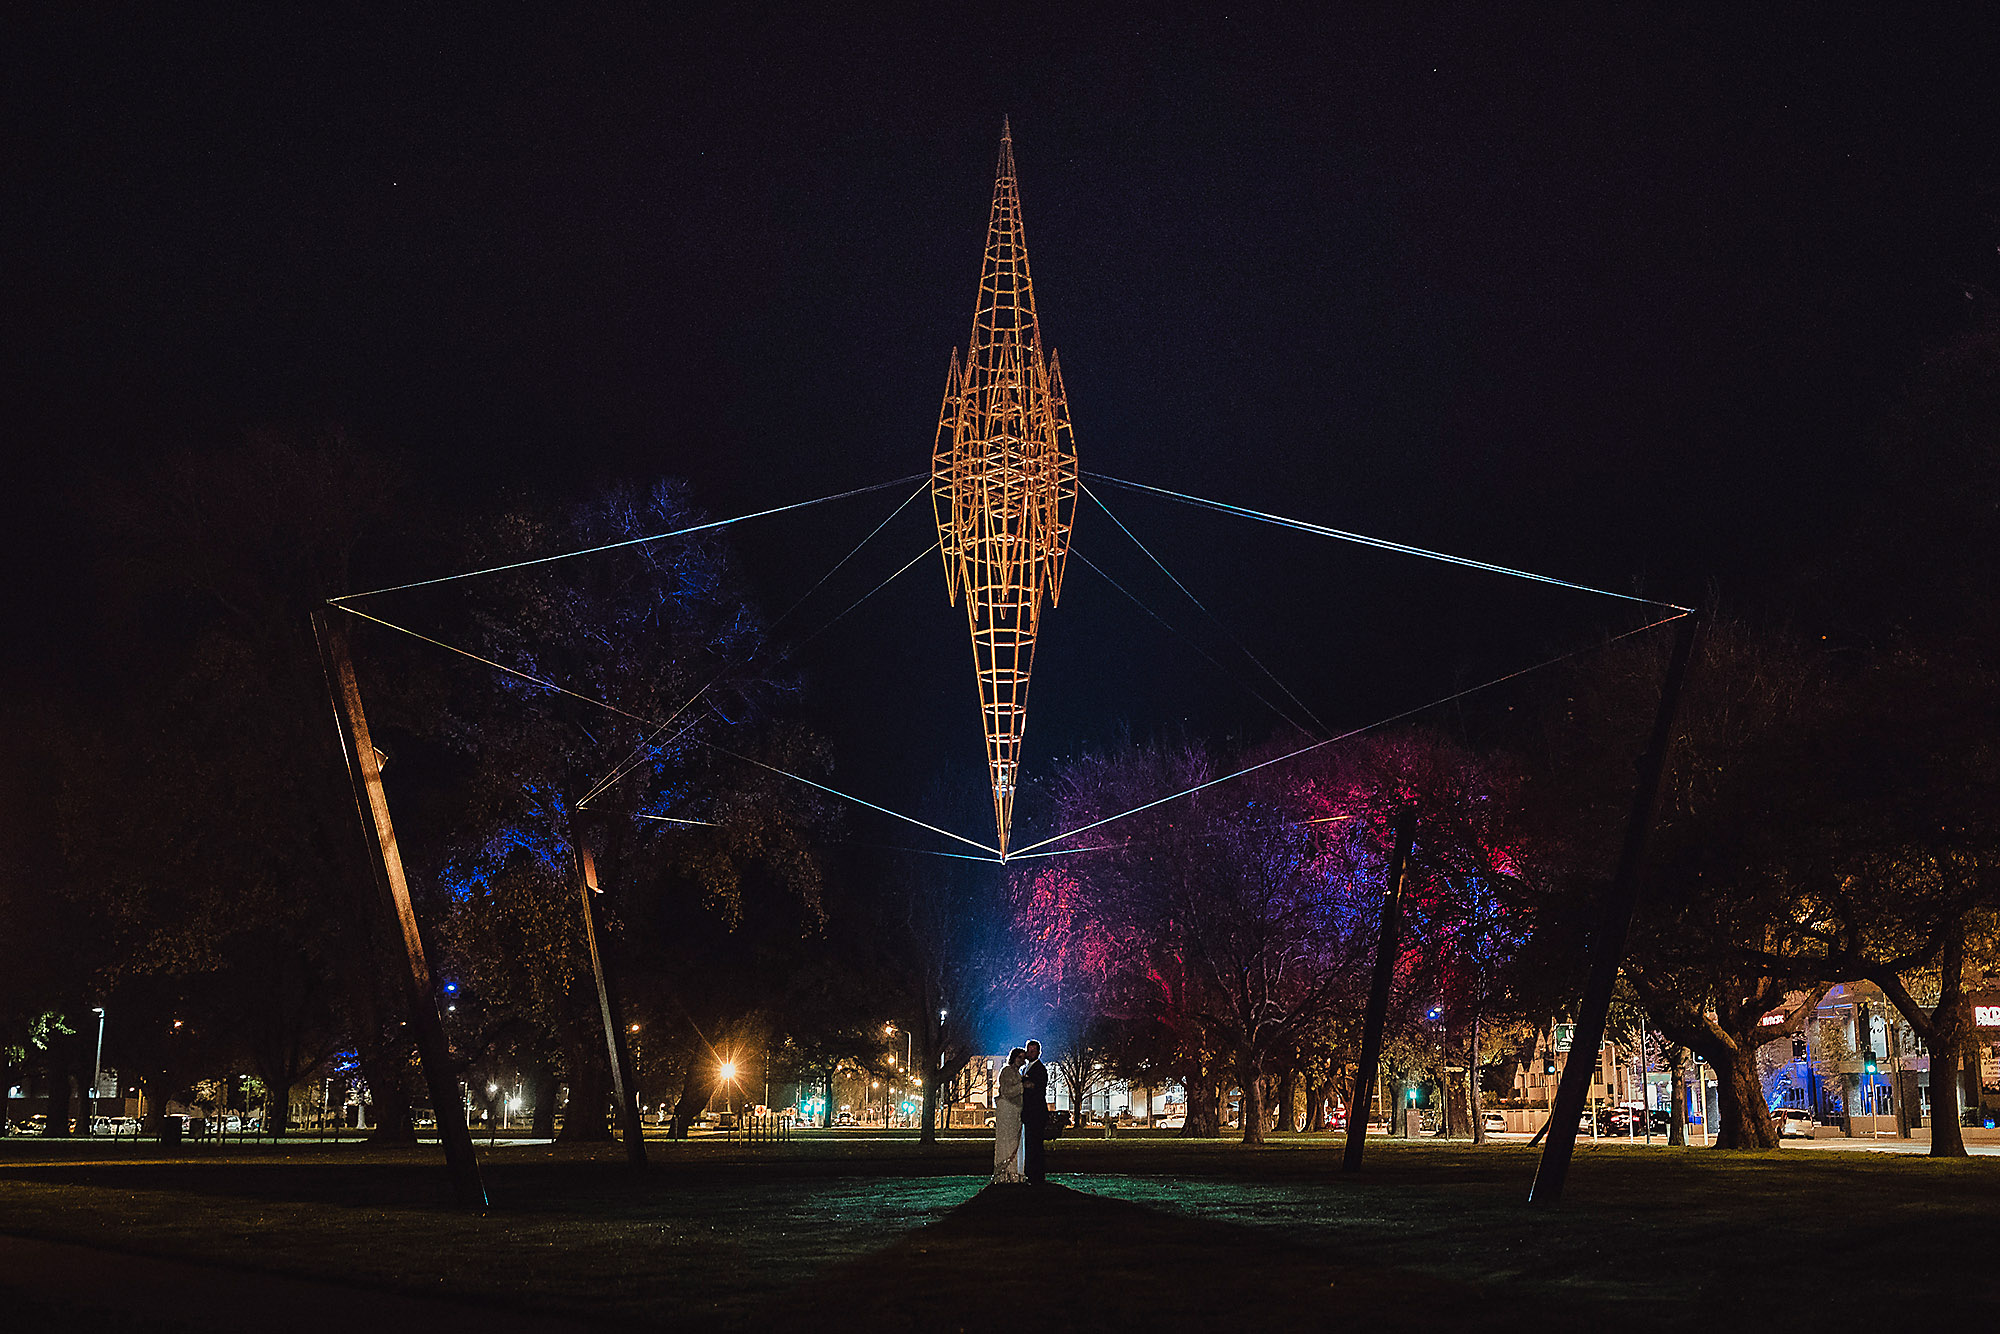 creative light night photo at wedding with bride and groom christchurch wedding photographer